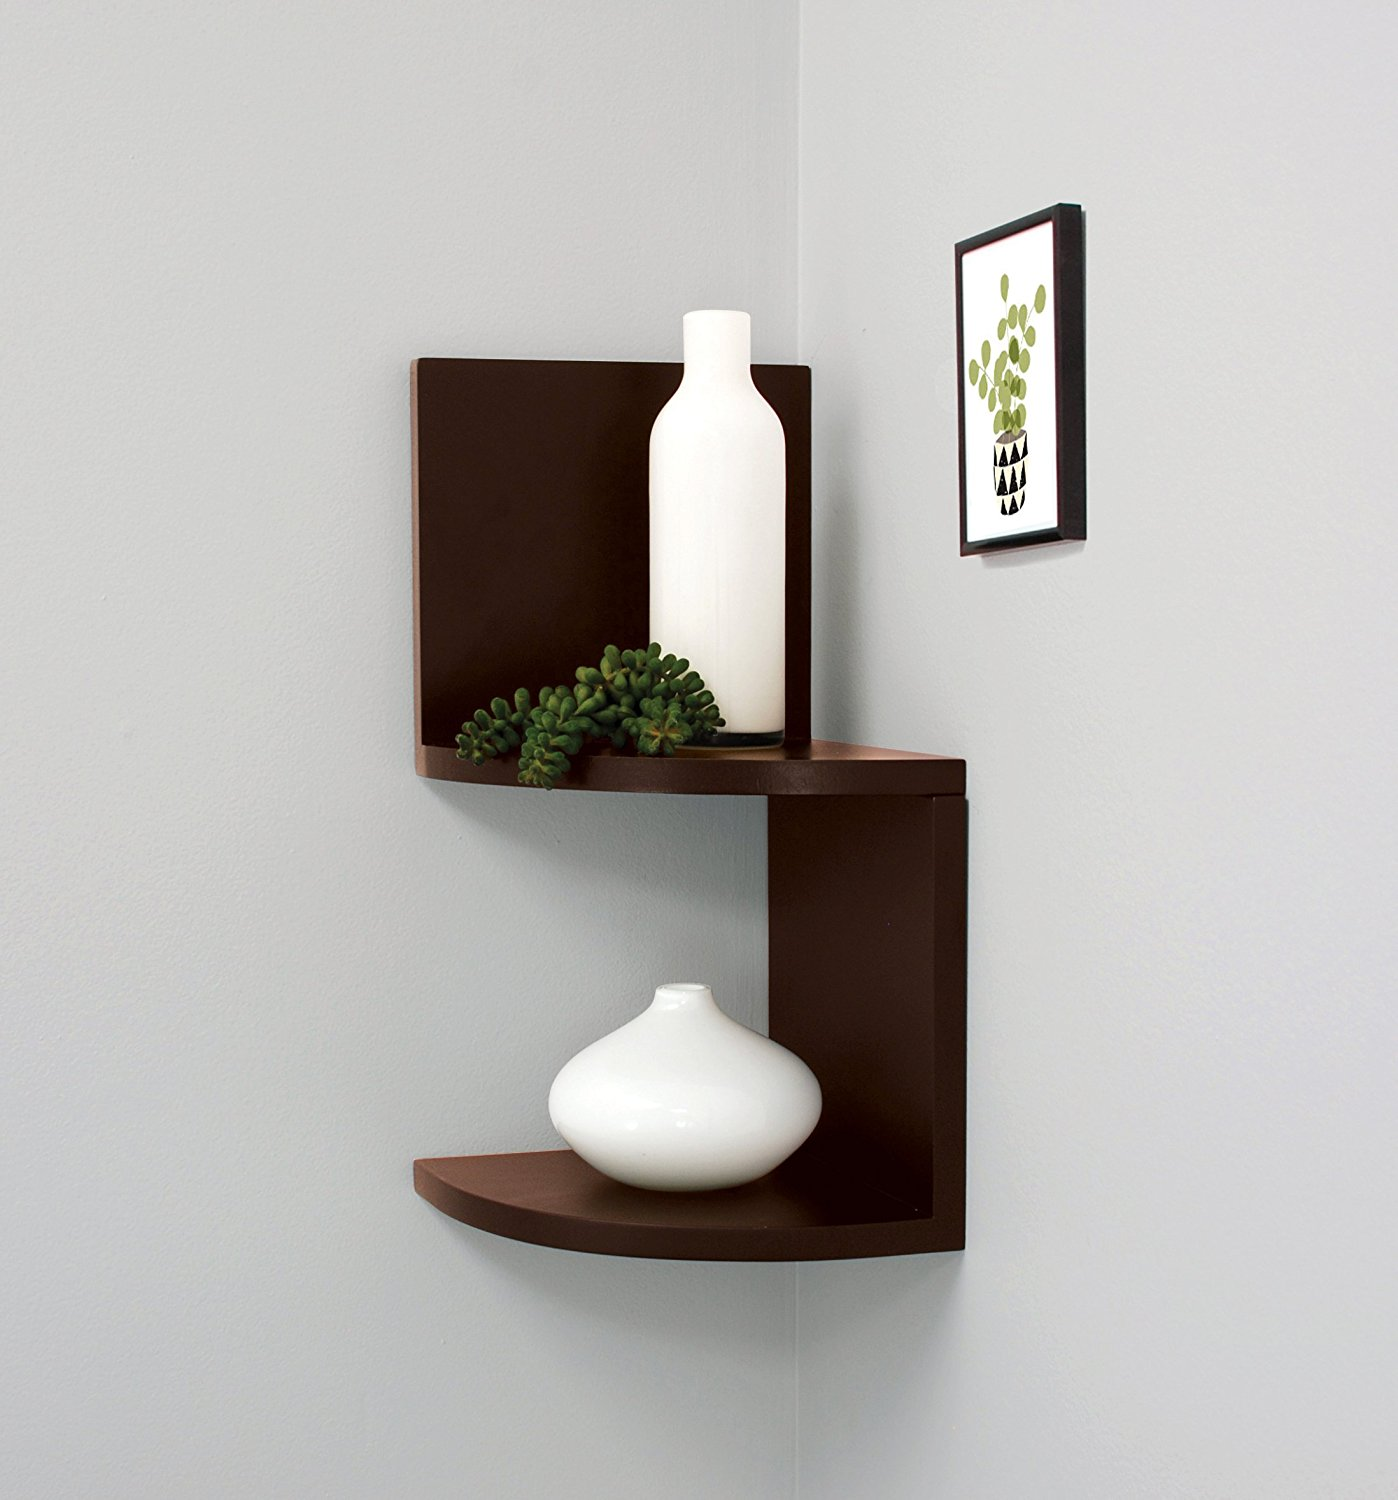 The Practical Corner Wall Shelves Design